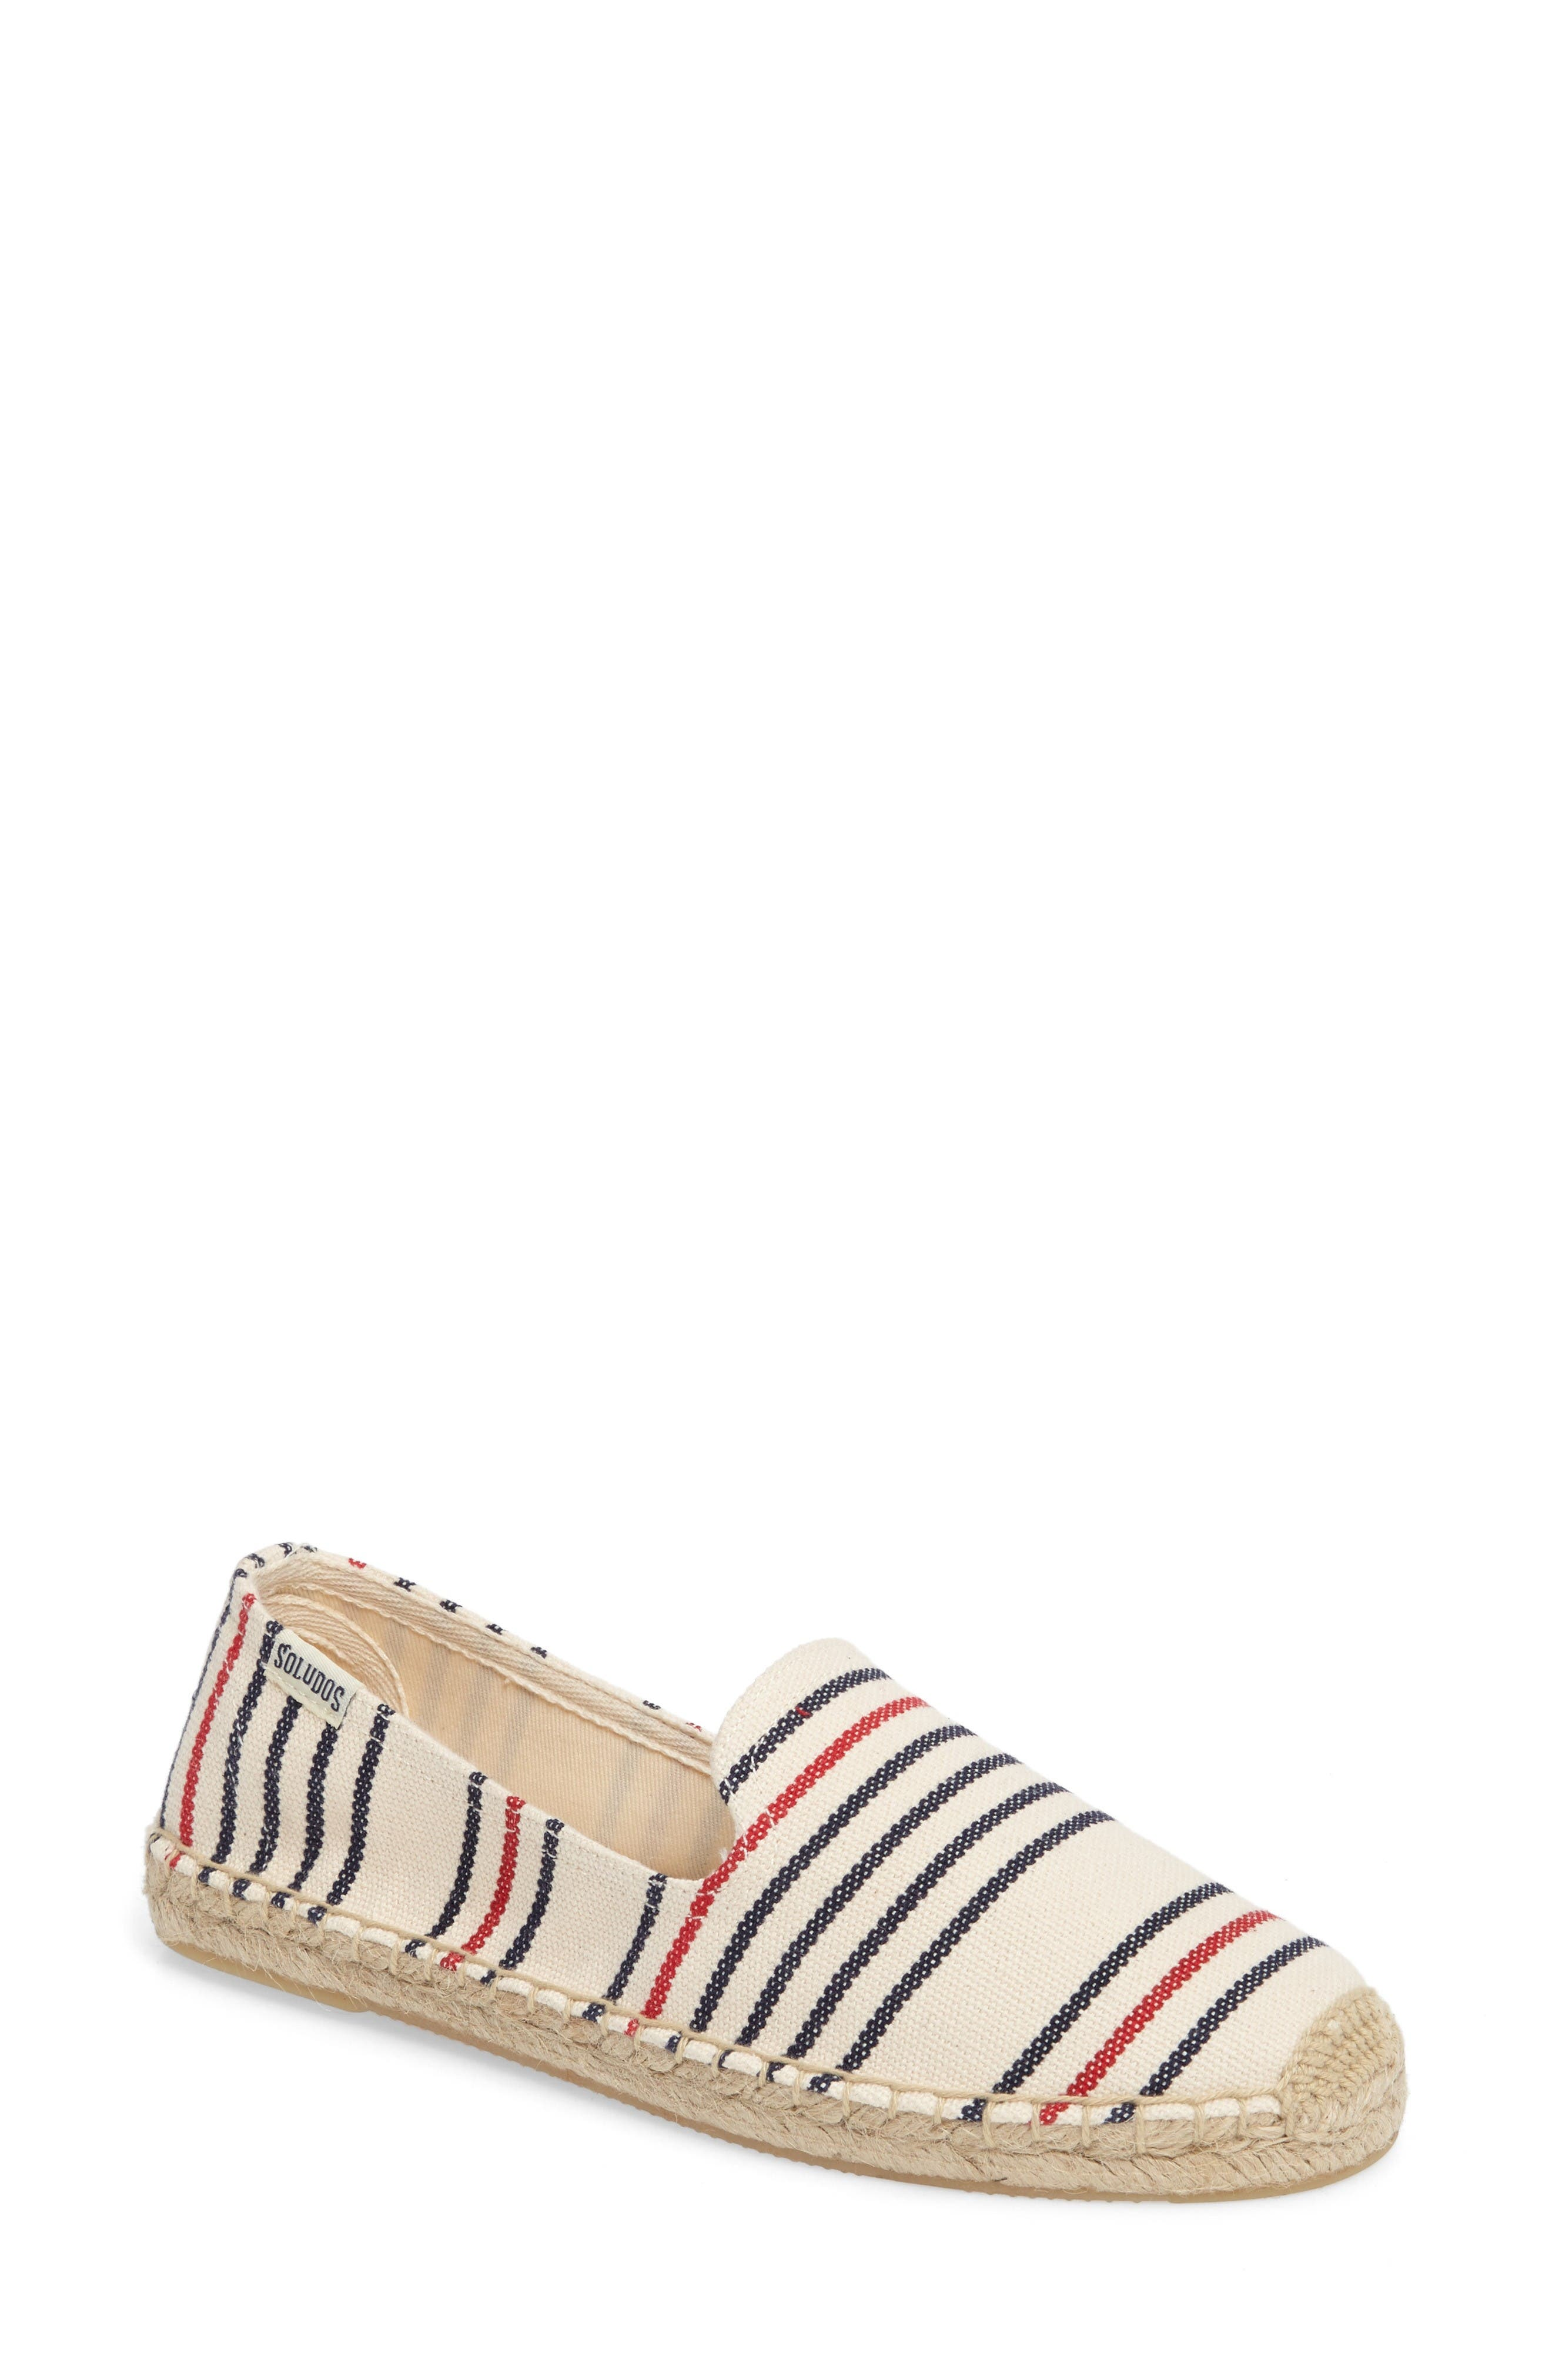 Main Image - Soludos Stripe Espadrille Loafer (Women)